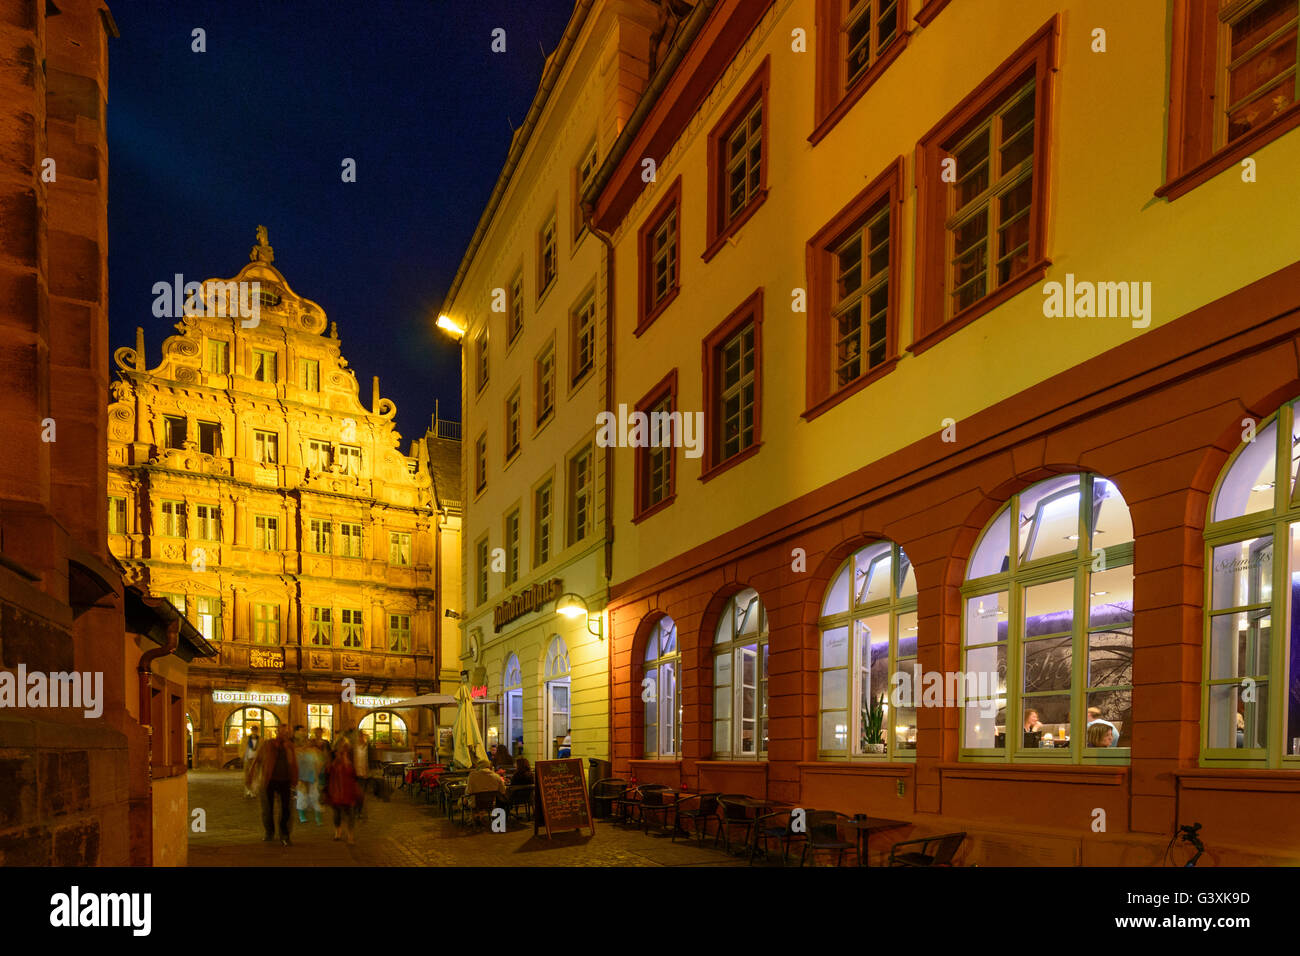 Old Town : Haspelgasse with Schmidt 's Lounge ( right) and Haus zum Ritter (House of the Knight), Germany, Baden - Stock Image